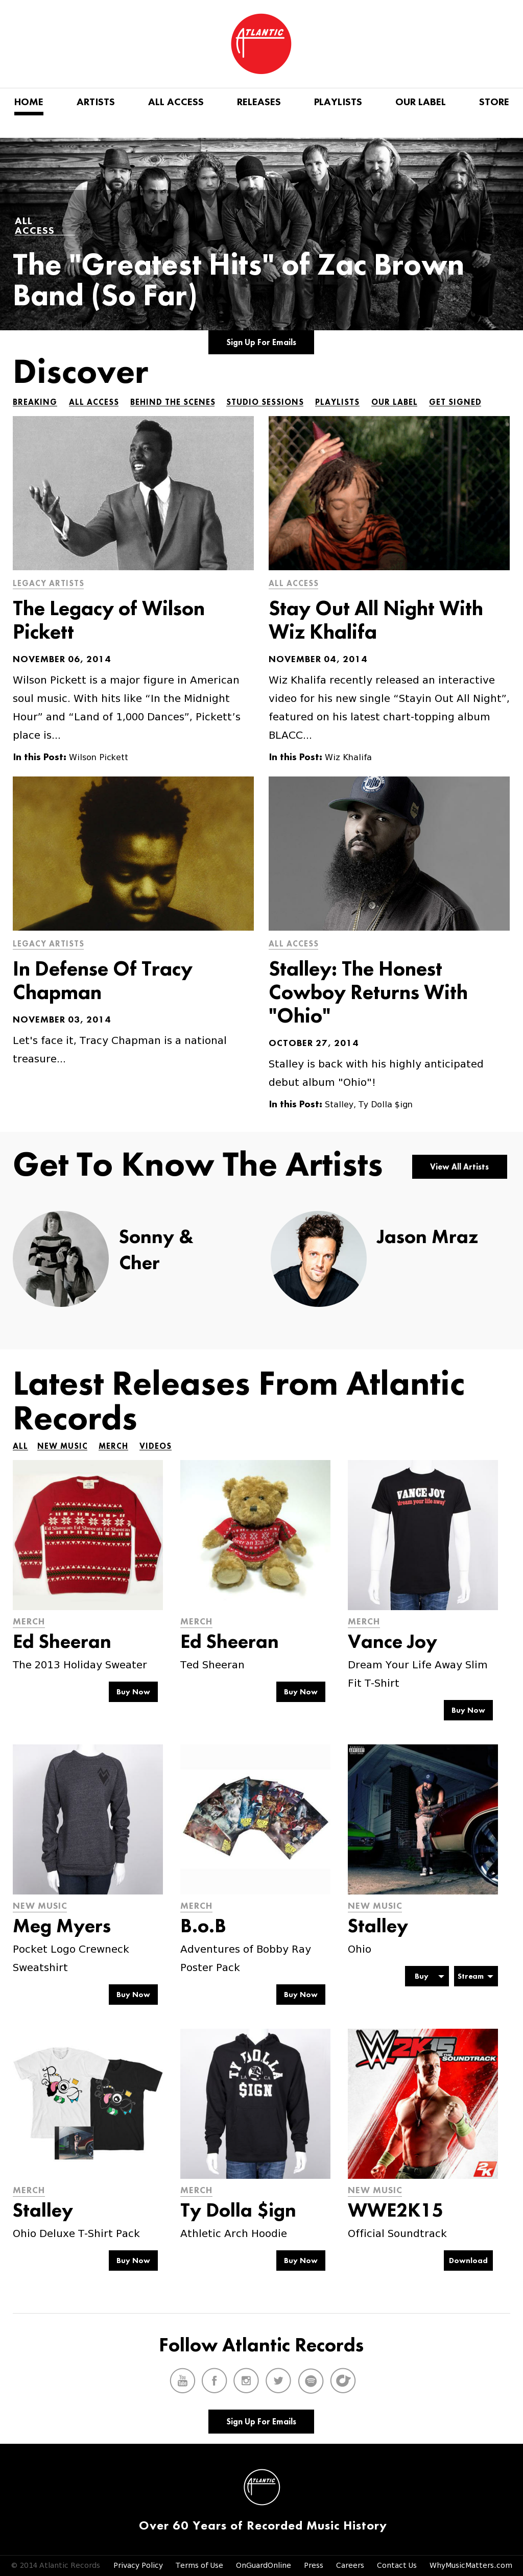 Atlantic Records Competitors, Revenue and Employees - Owler